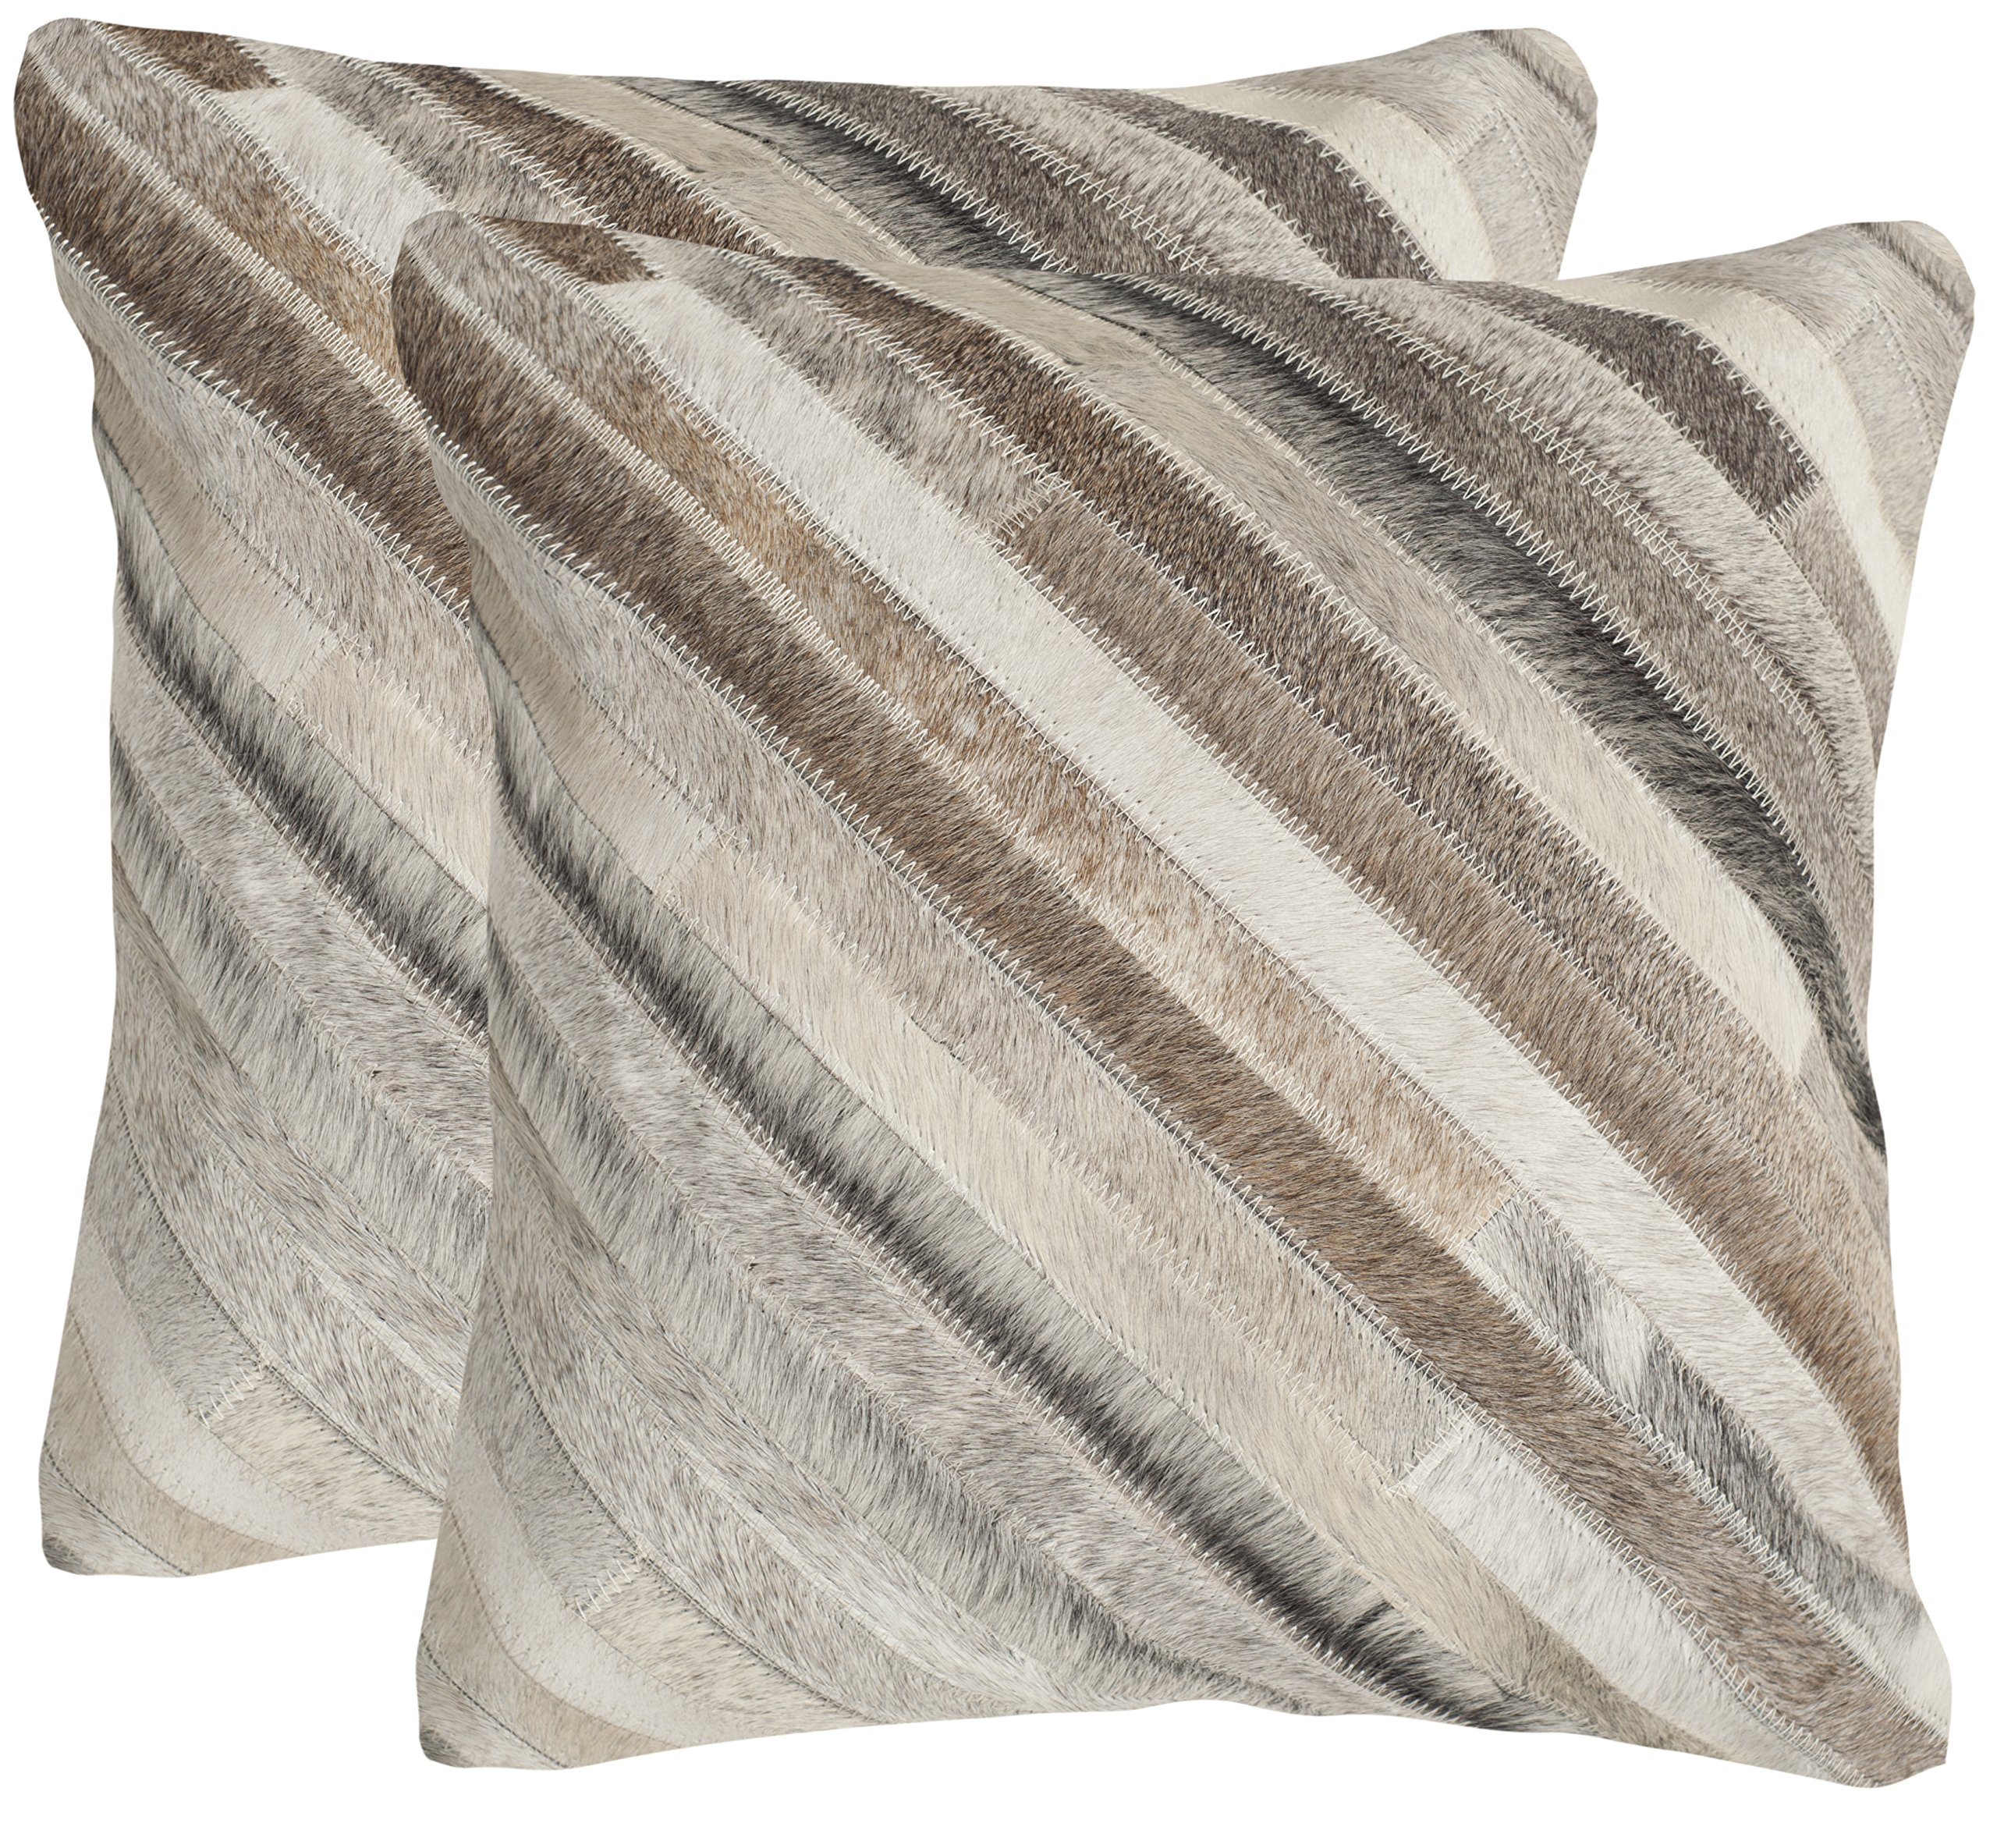 Safavieh Pillow Collection Throw Pillows, 22 by 22-Inch, Cherilyn Grey, Set of 2